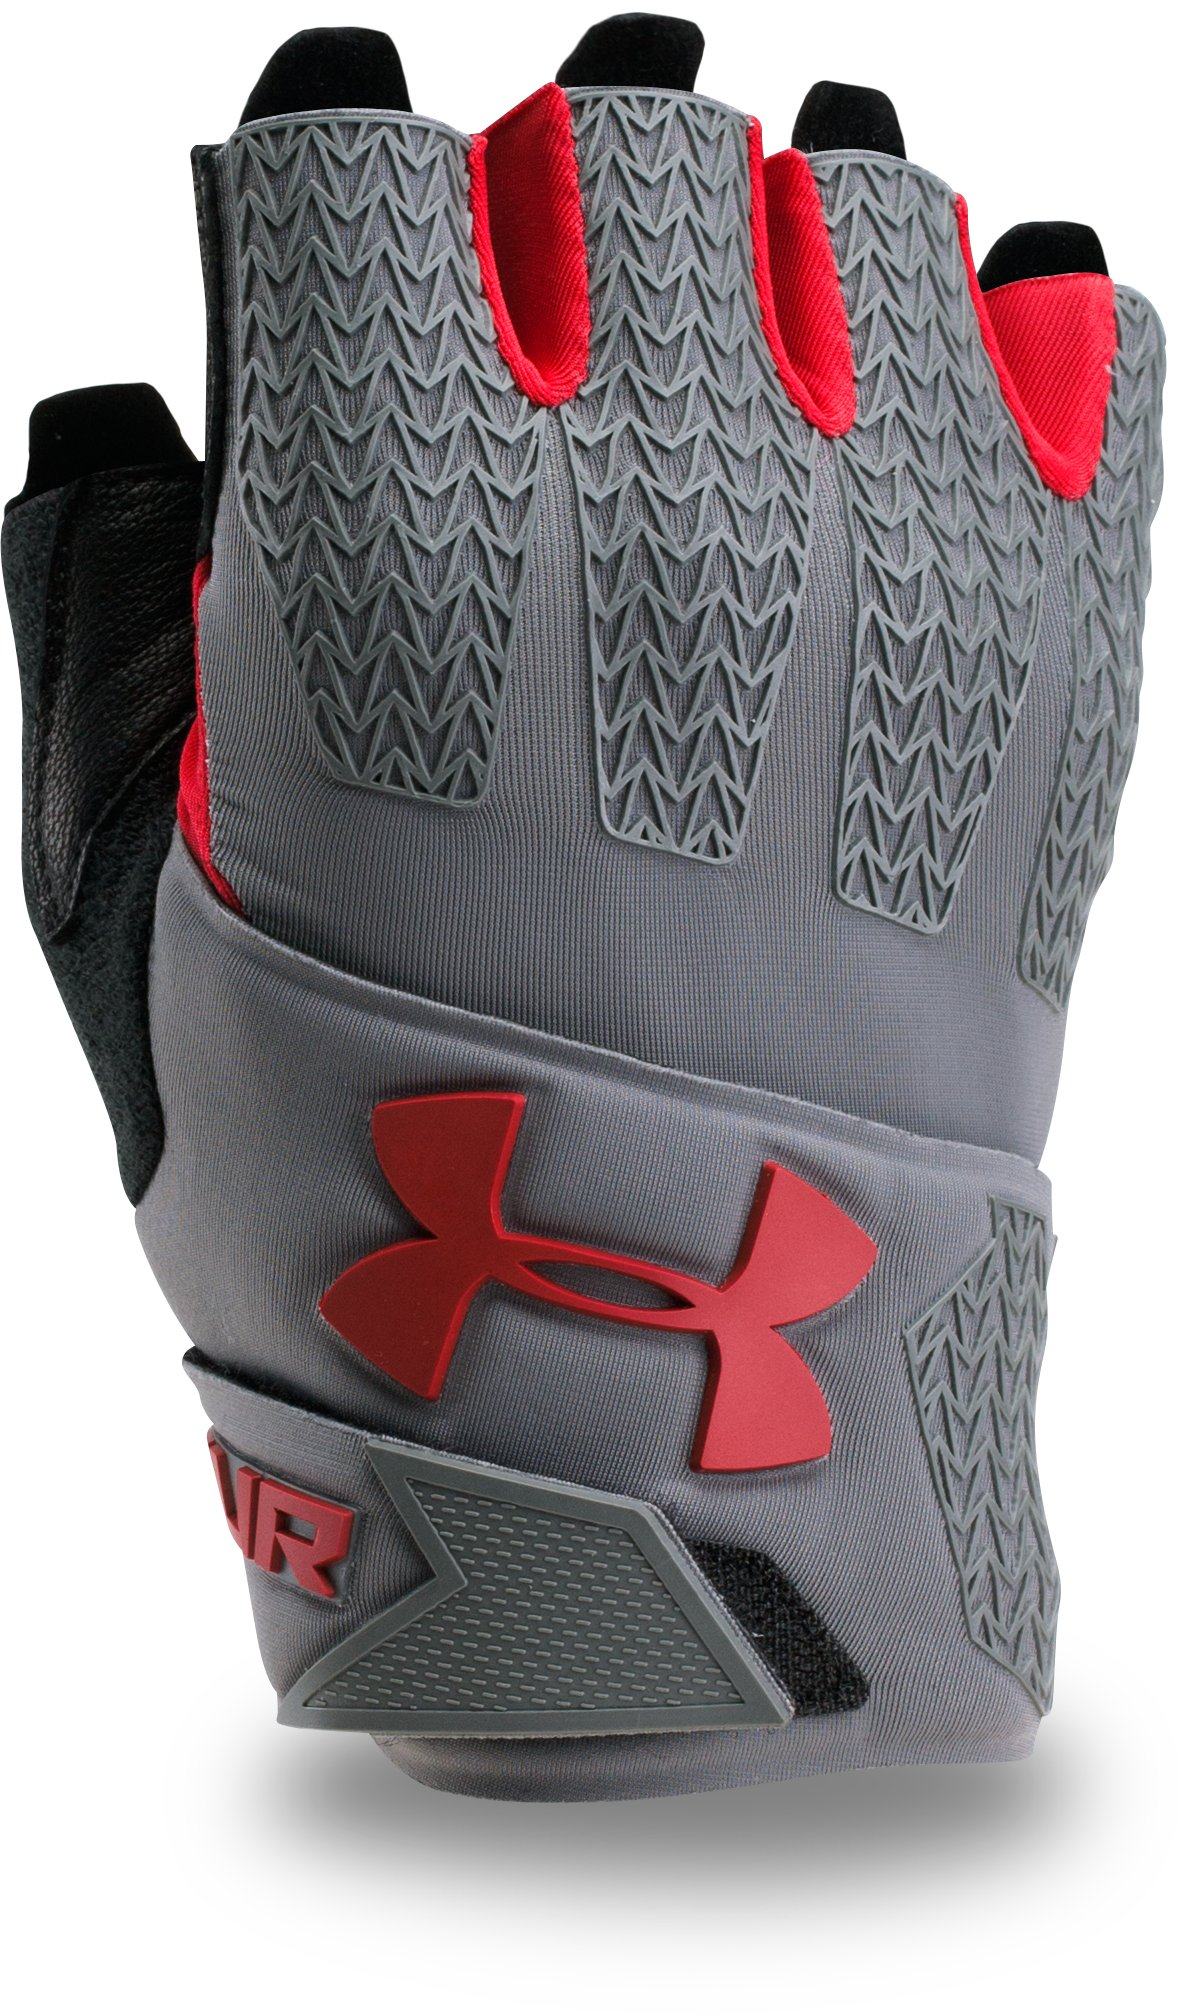 graphite gloves Men's UA ClutchFit® Resistor Training Gloves Great gloves they perform better than expected....Great fit!...GREAT PRODUCT!